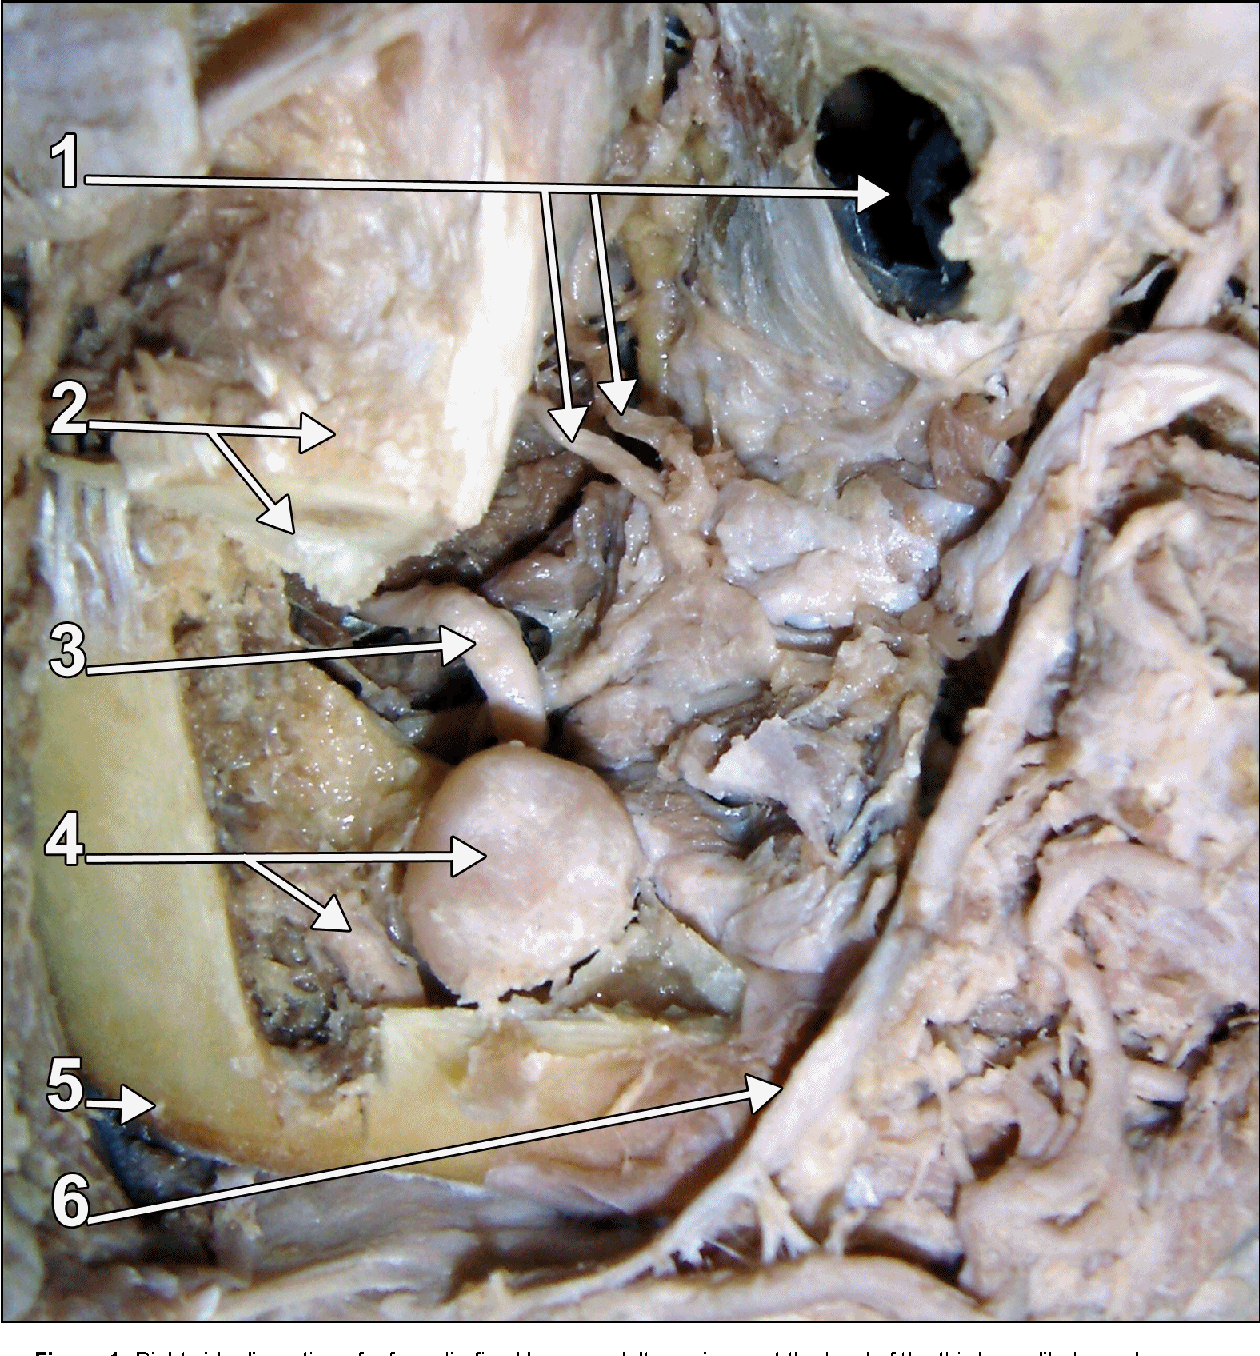 Dissection And Detailed Anatomy Of An Impacted Mandibular Third